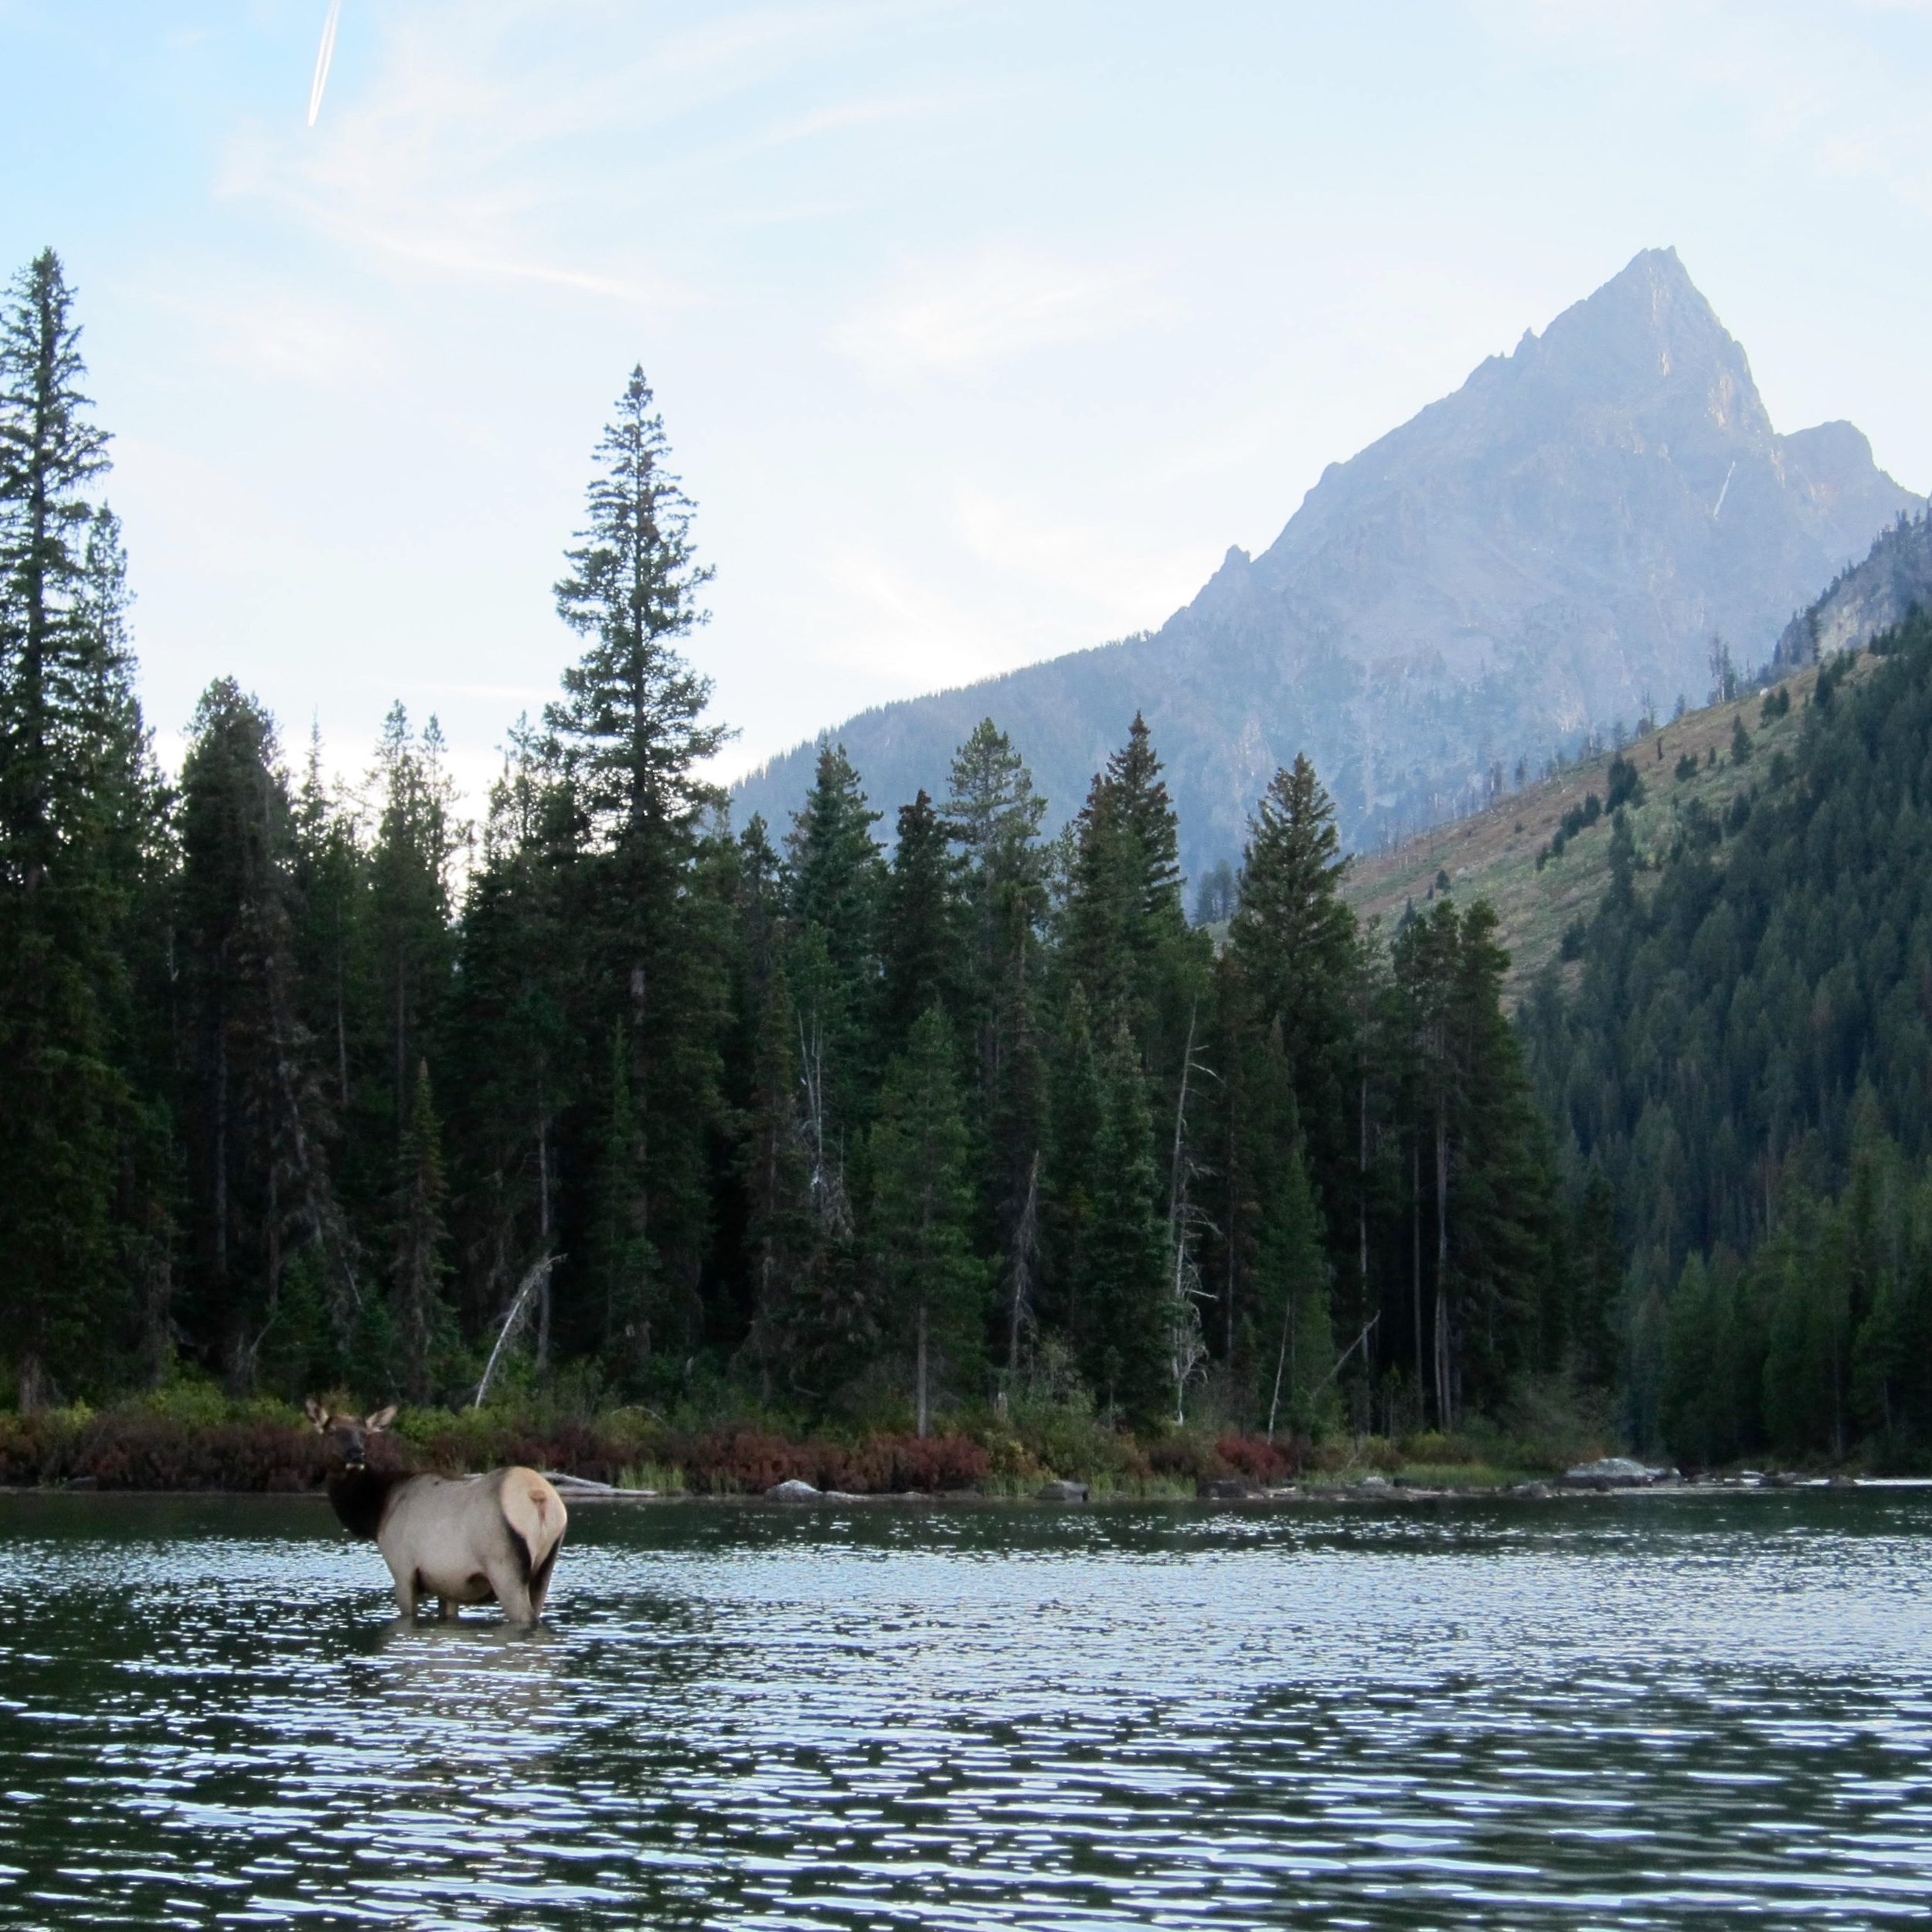 Our paddle back took us right past a group of elk that were just hanging out in the river.